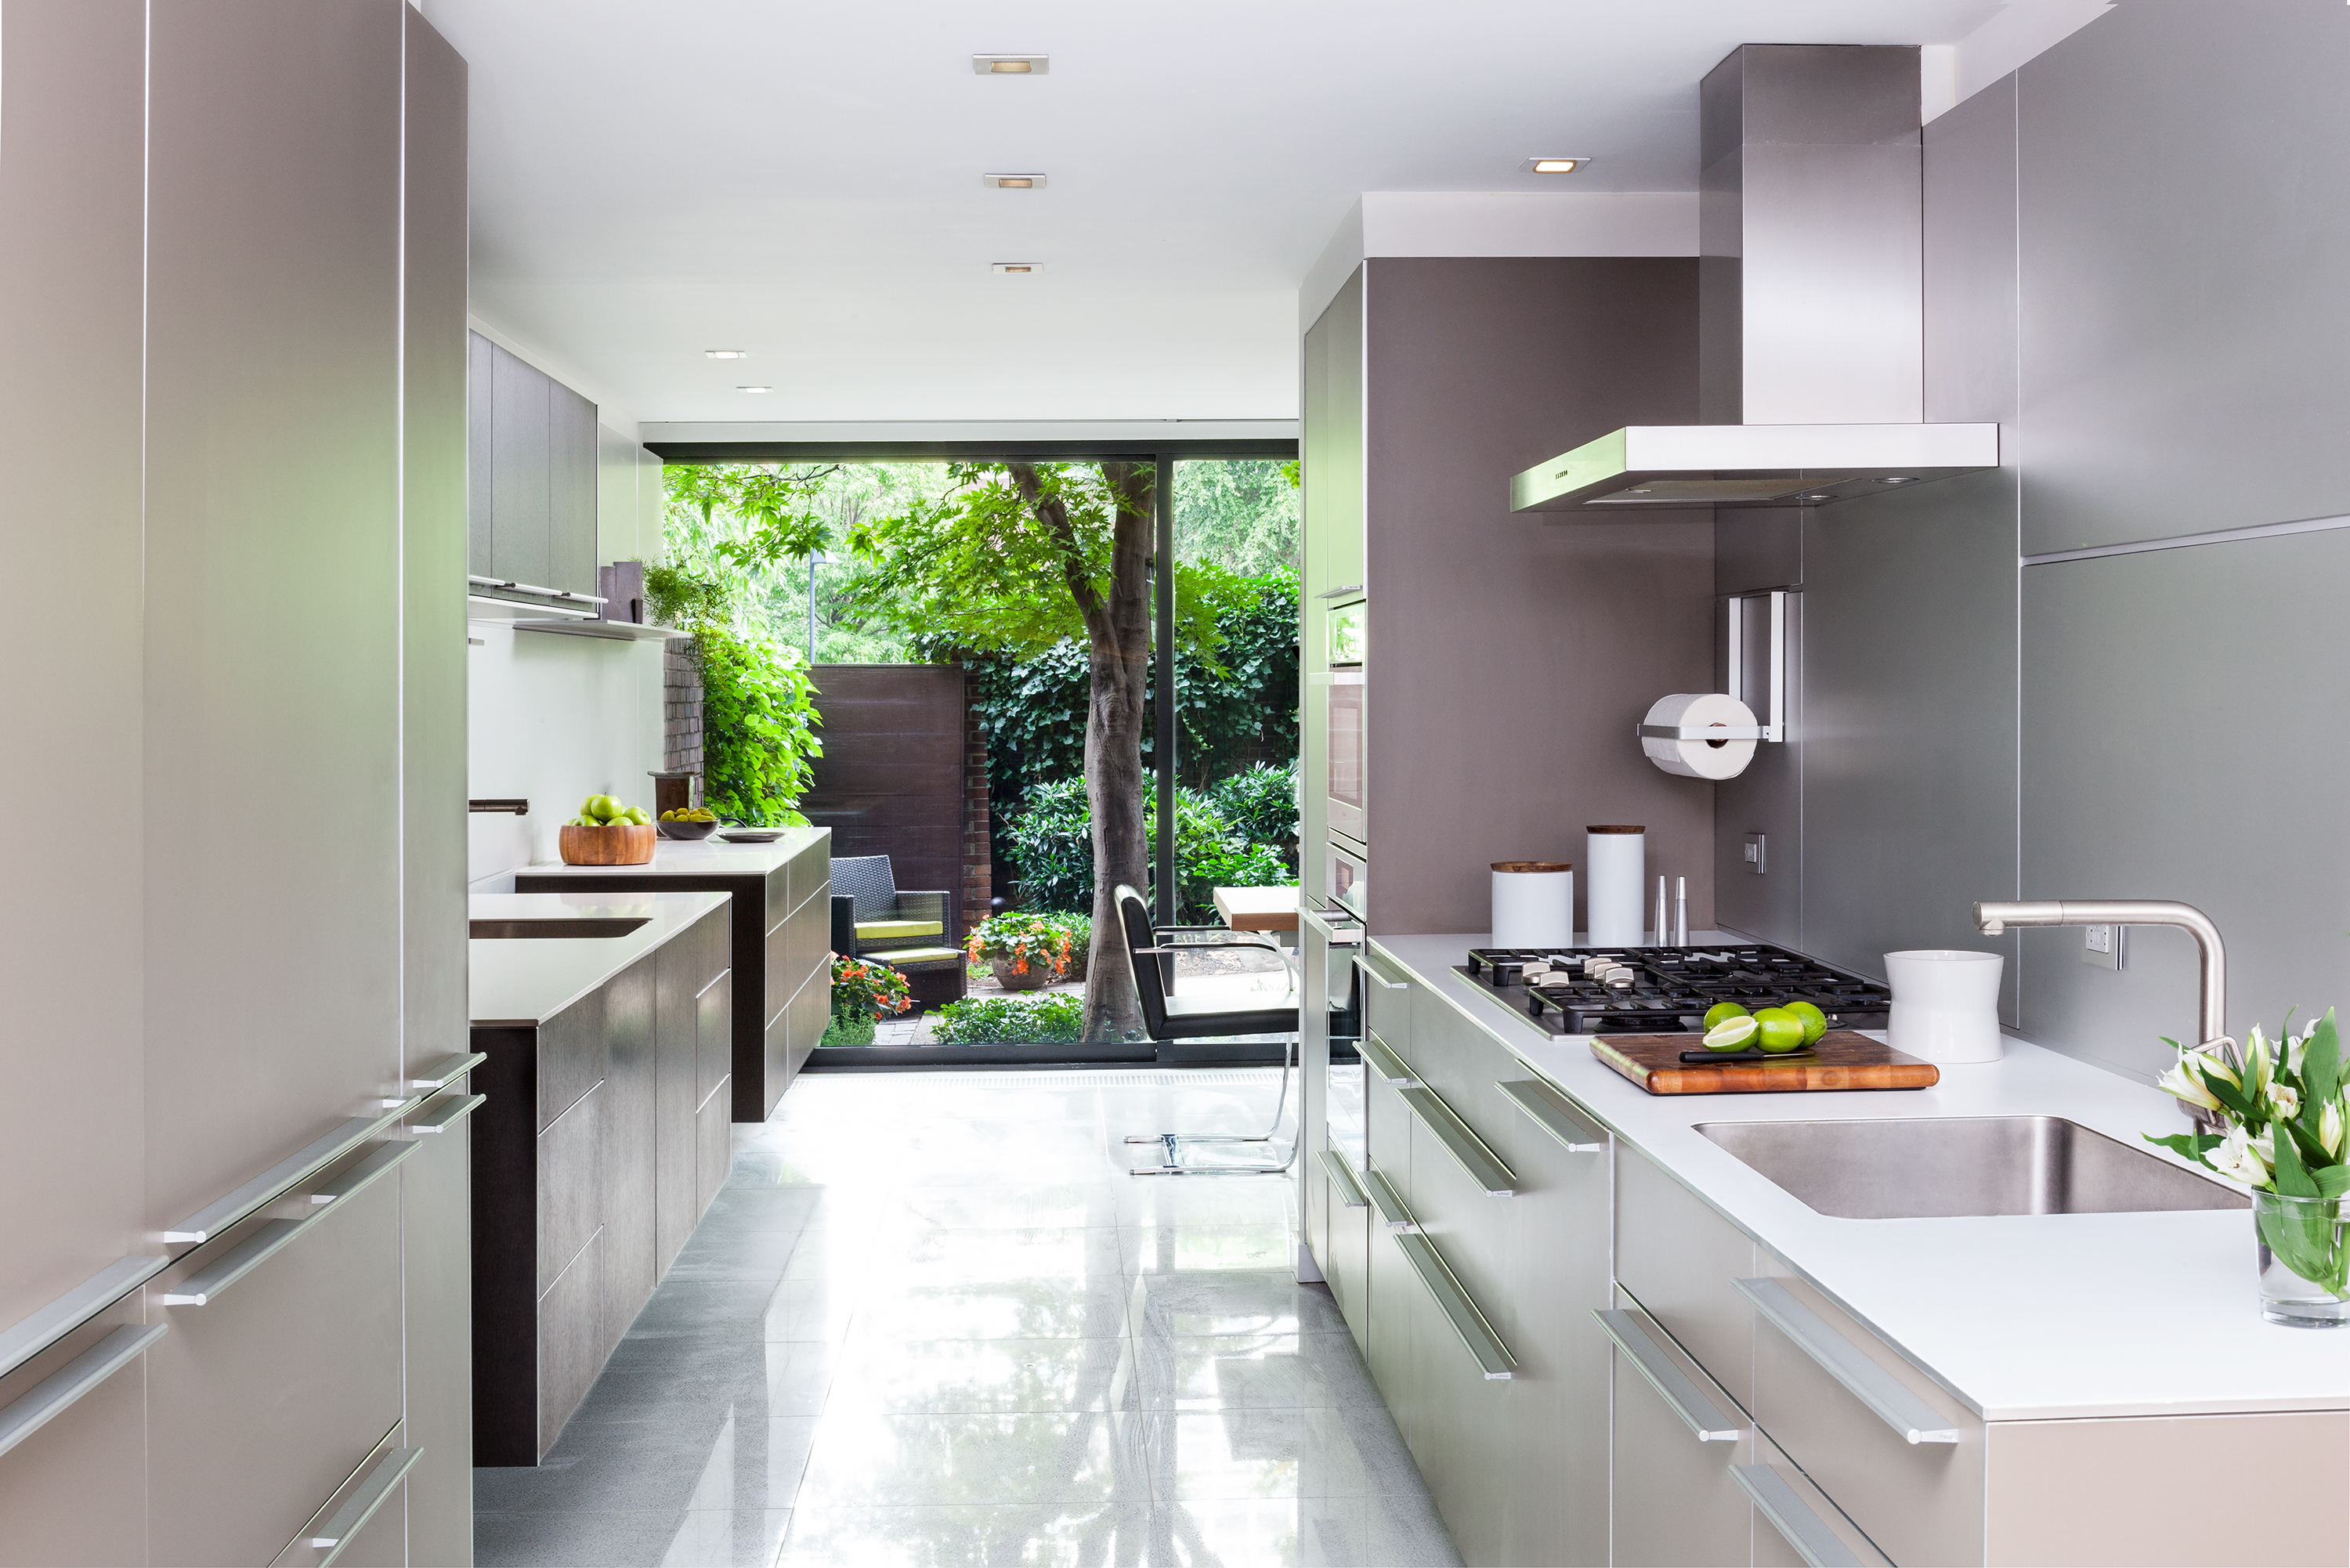 A Kitchen Features Metal Cabinets And Metal Lined Walls.